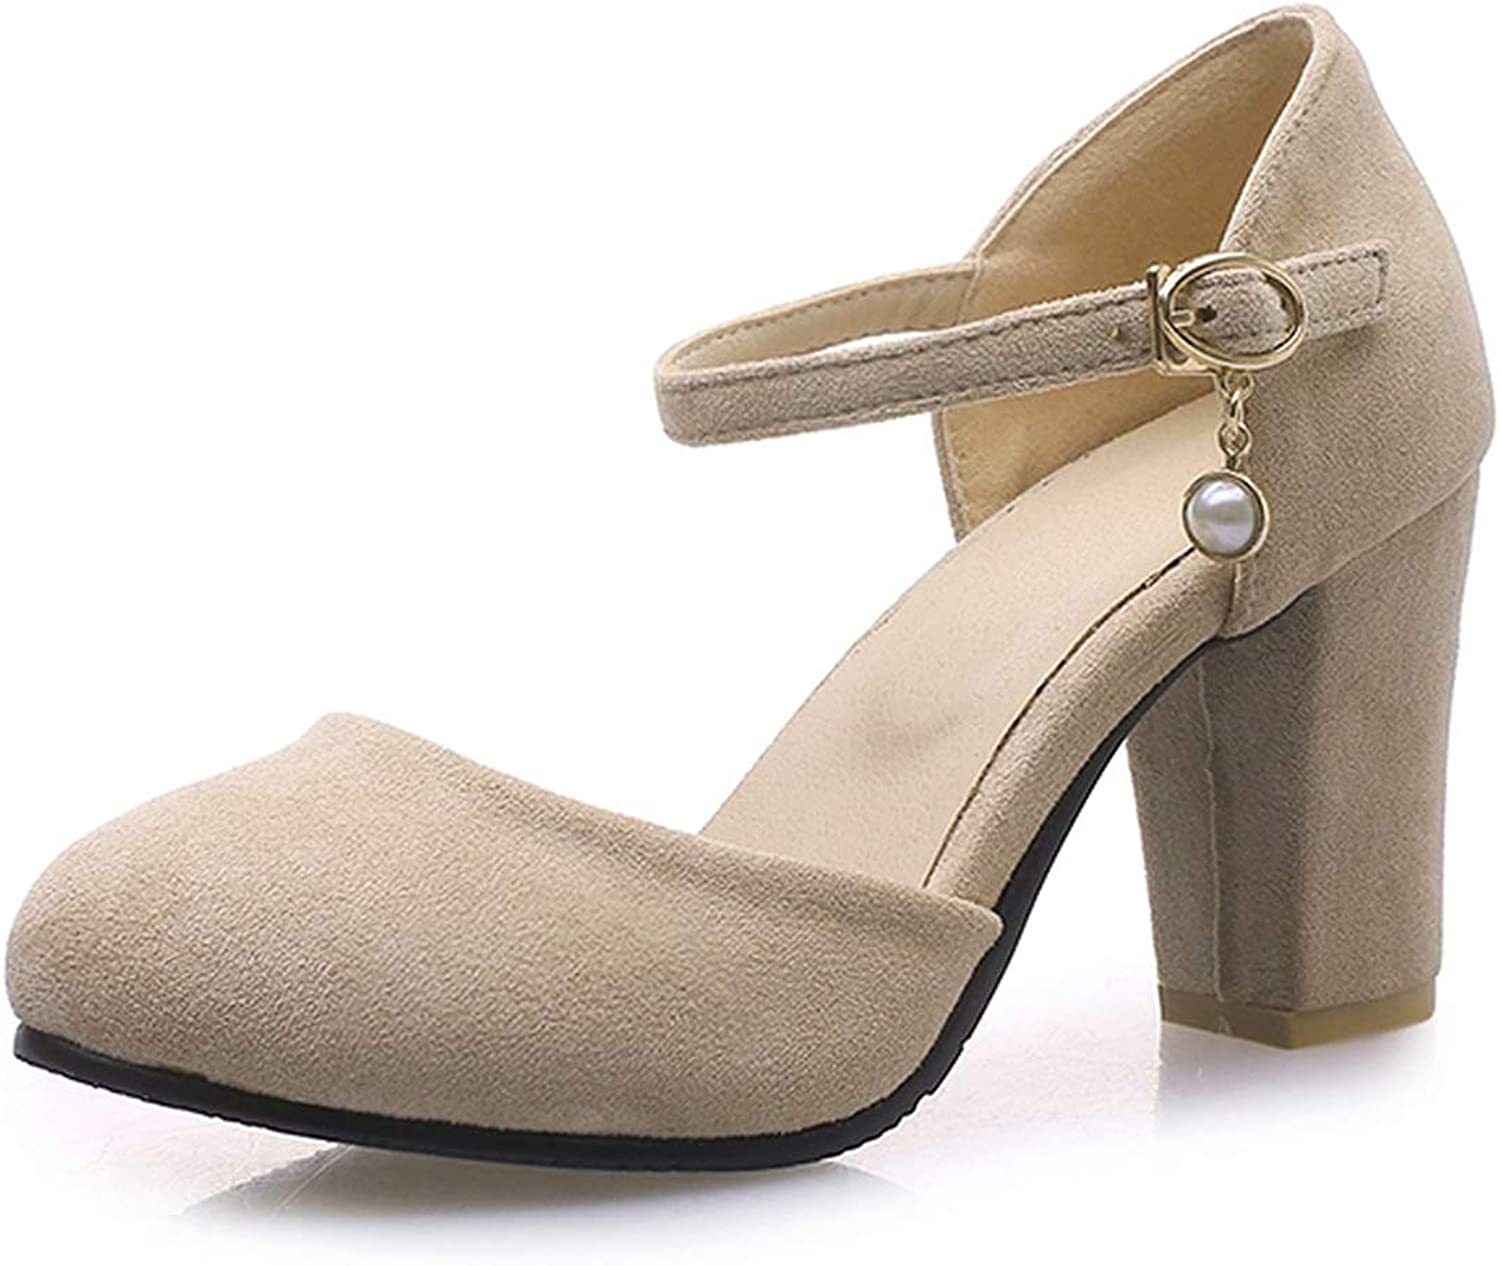 Chic High Heels Sandals Chunky Heels Older Comfortable Womens Classics Womens Shoes,Apricot,5